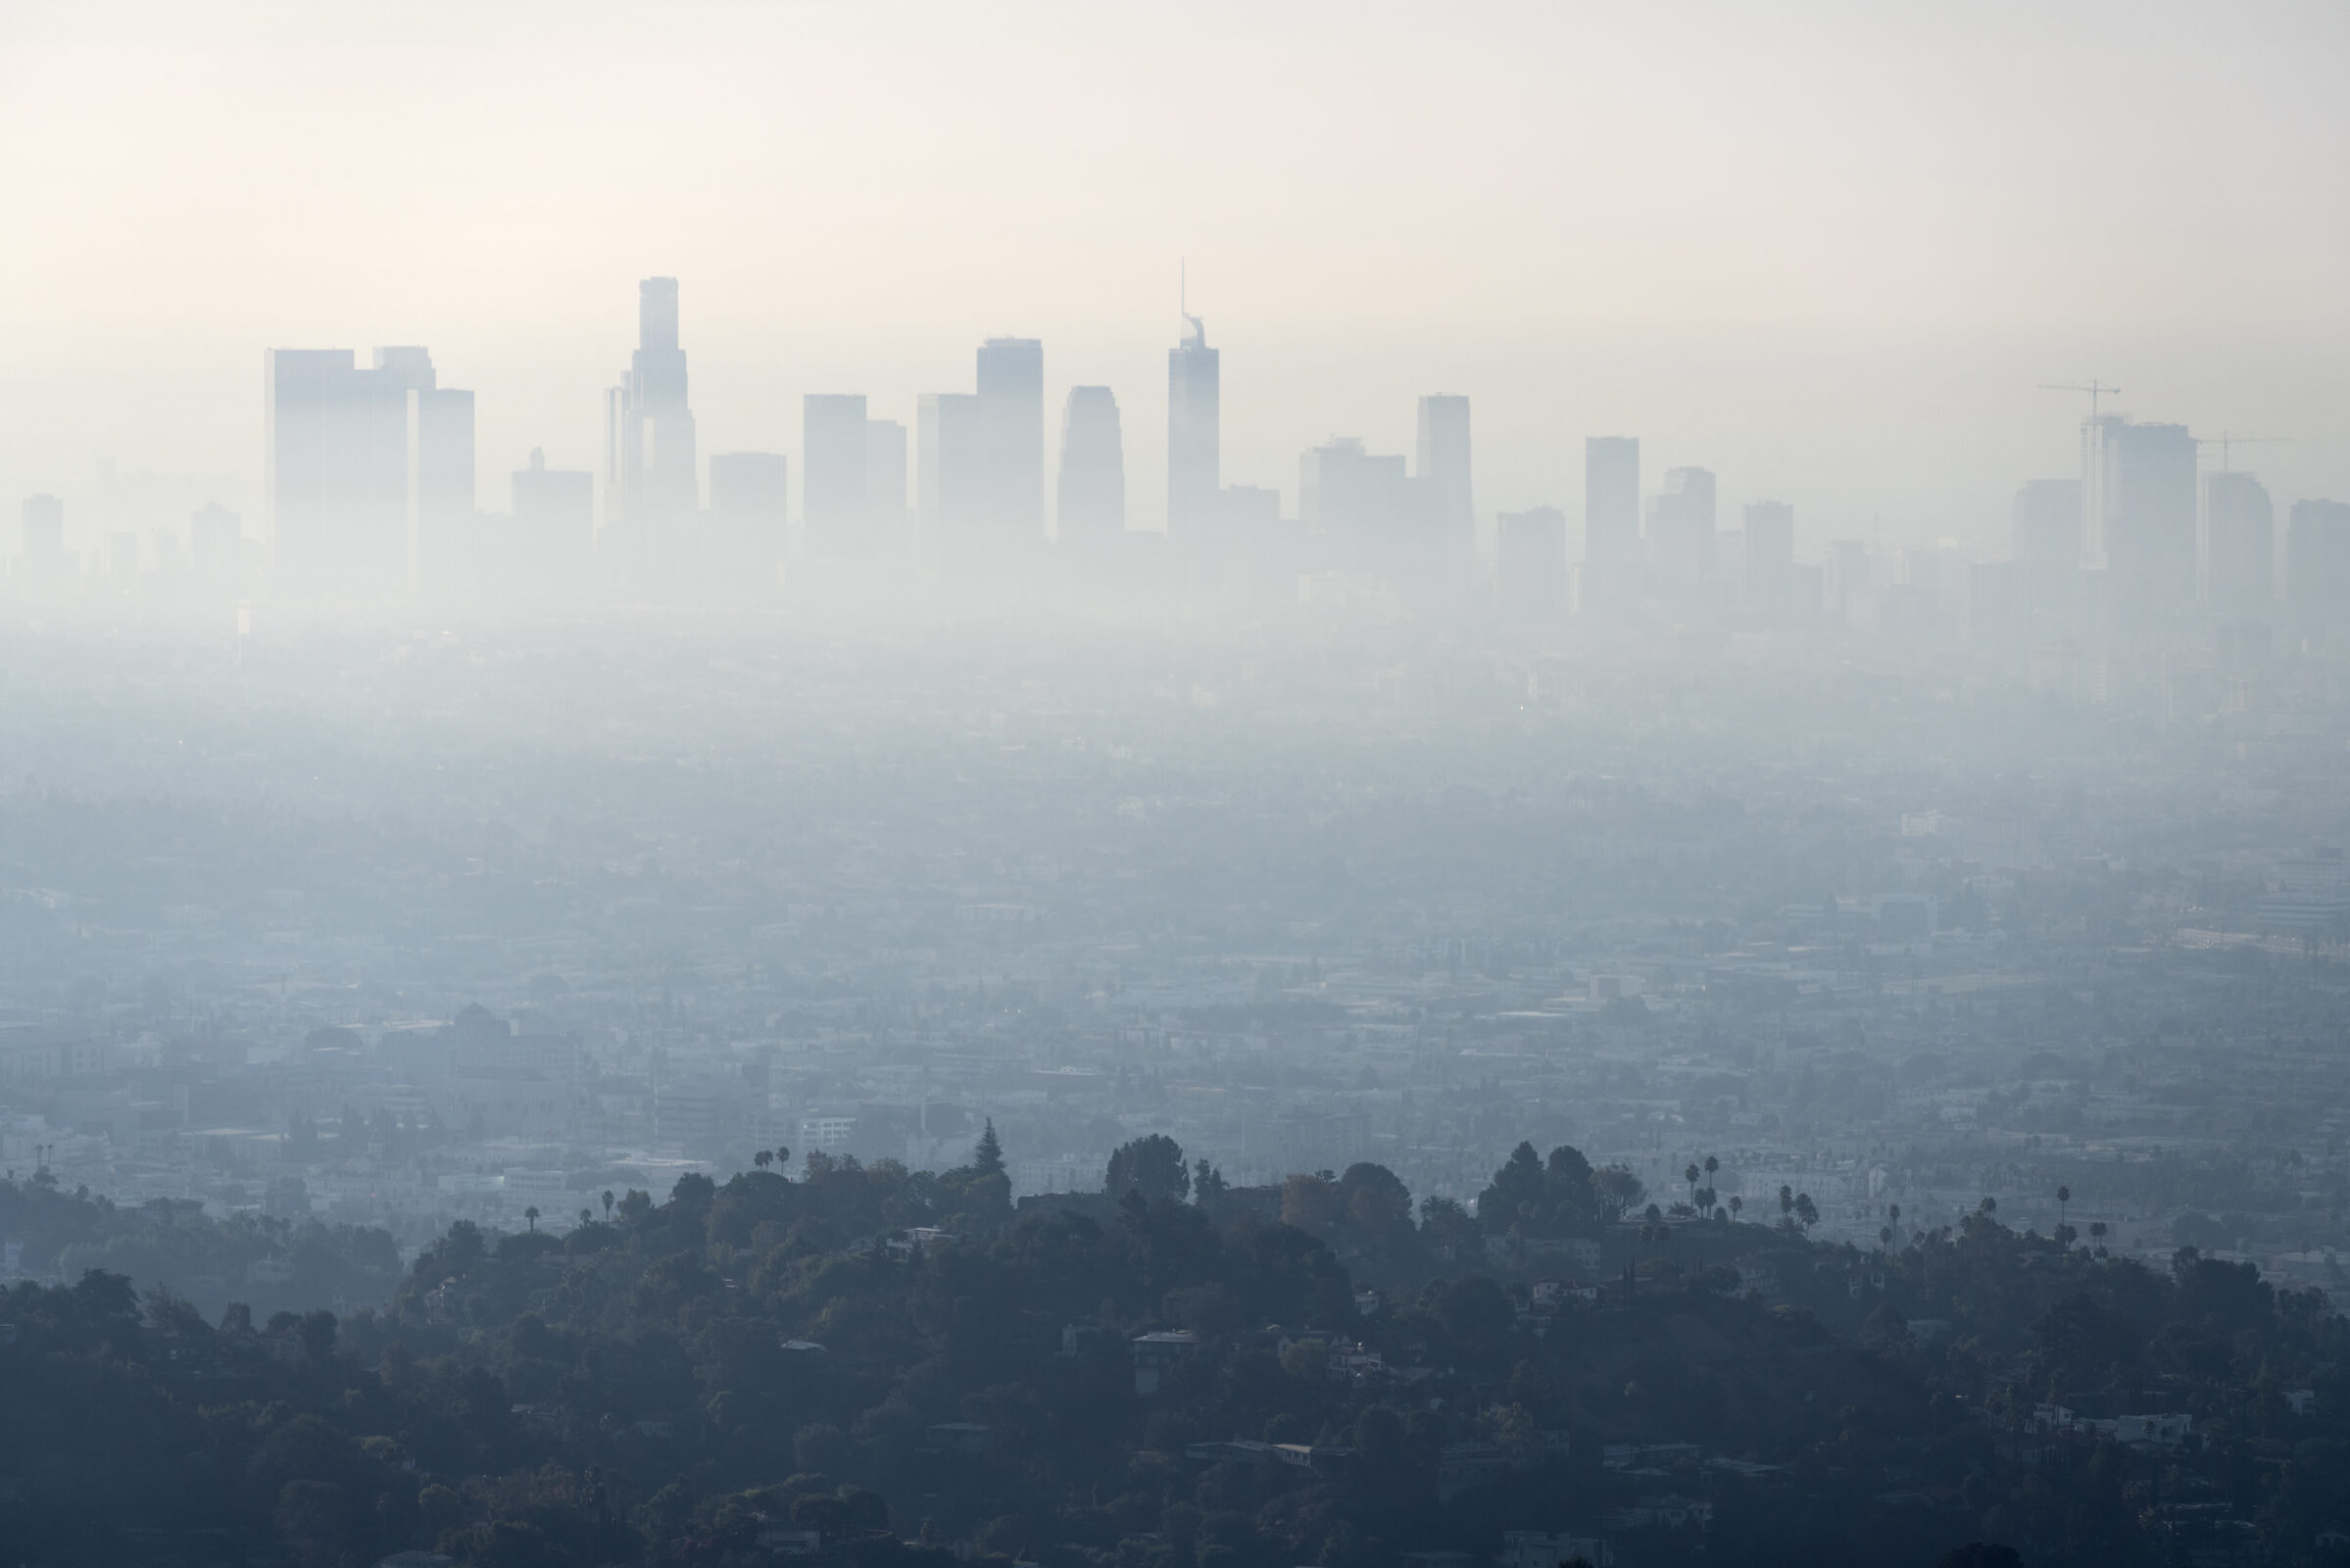 Thick layer of smog and haze from nearby brush fire obscuring the view of downtown Los Angeles buildings in Southern California.   Shot from hilltop in popular Griffith Park.